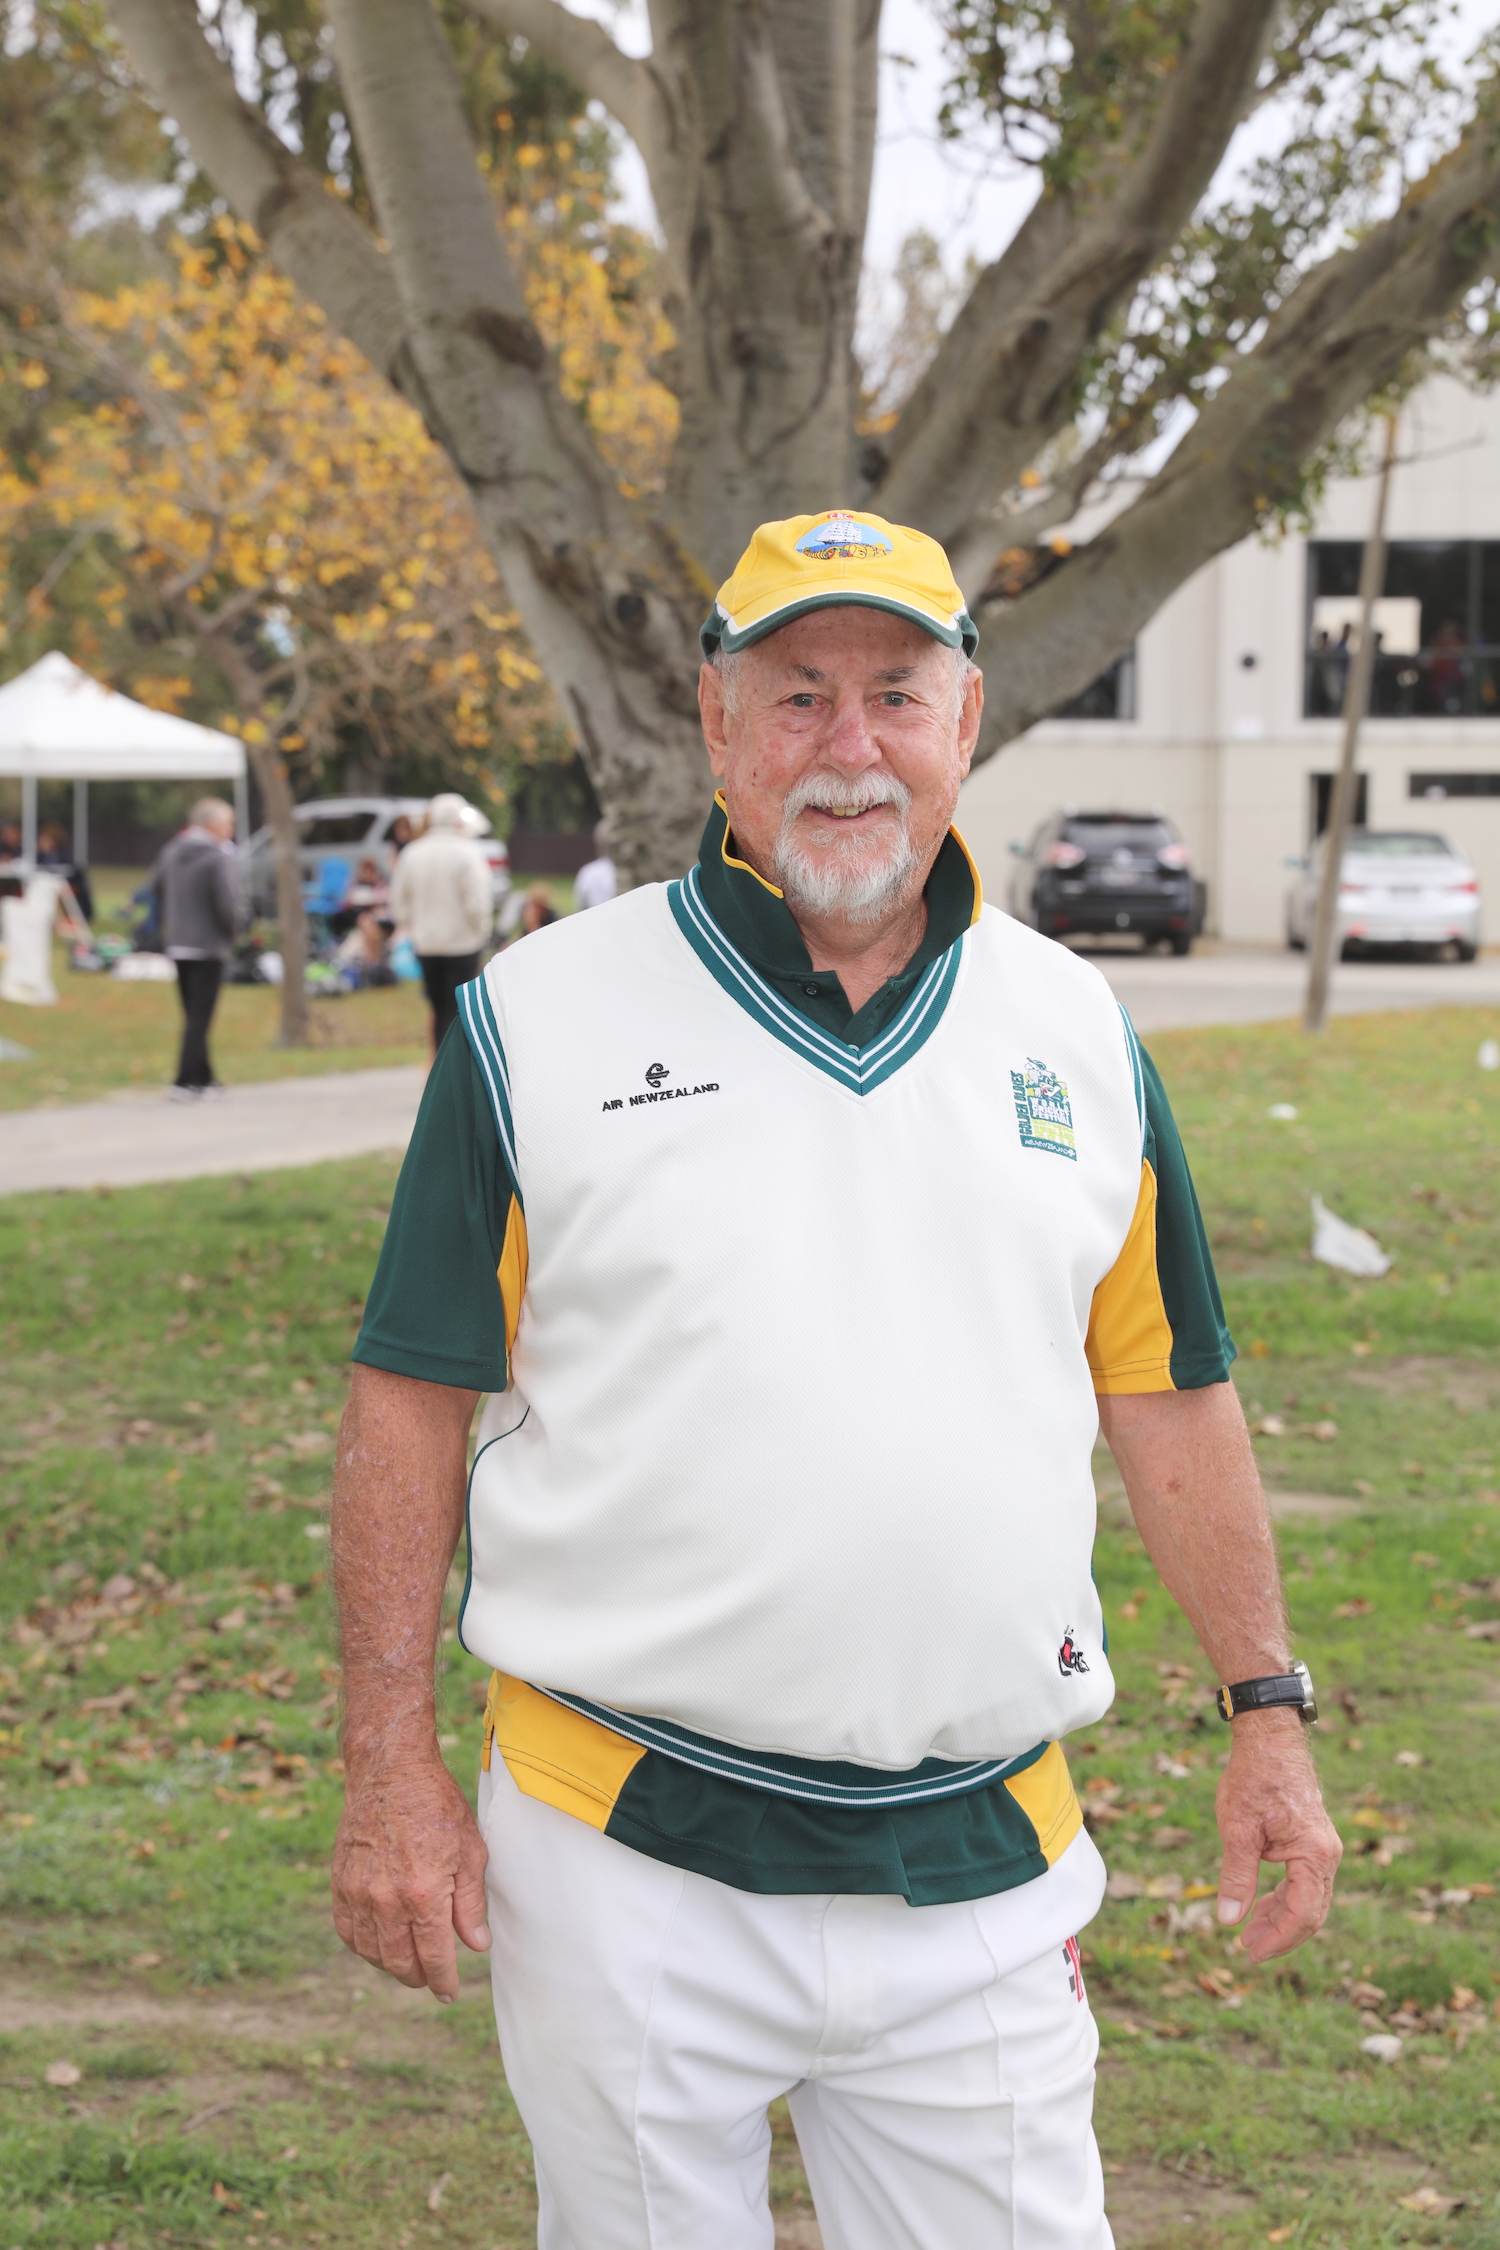 Golden Oldies World Cricket Festival